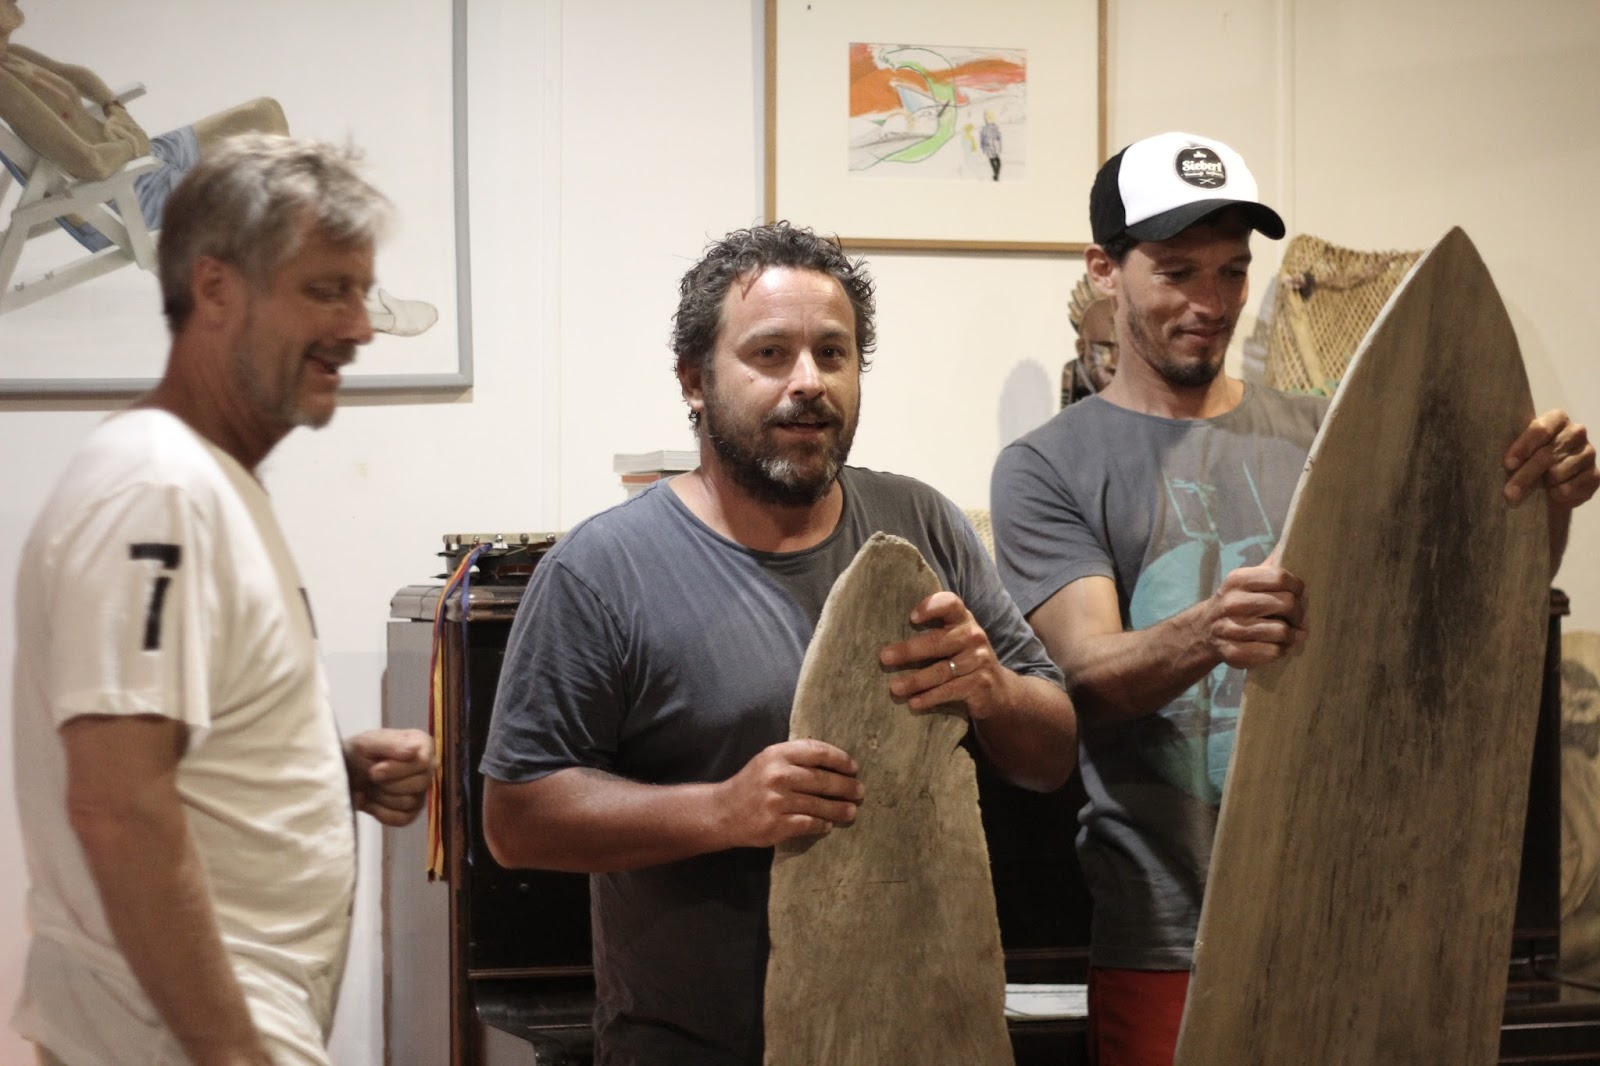 16-03-2016-australia-siebert-surfboards-19